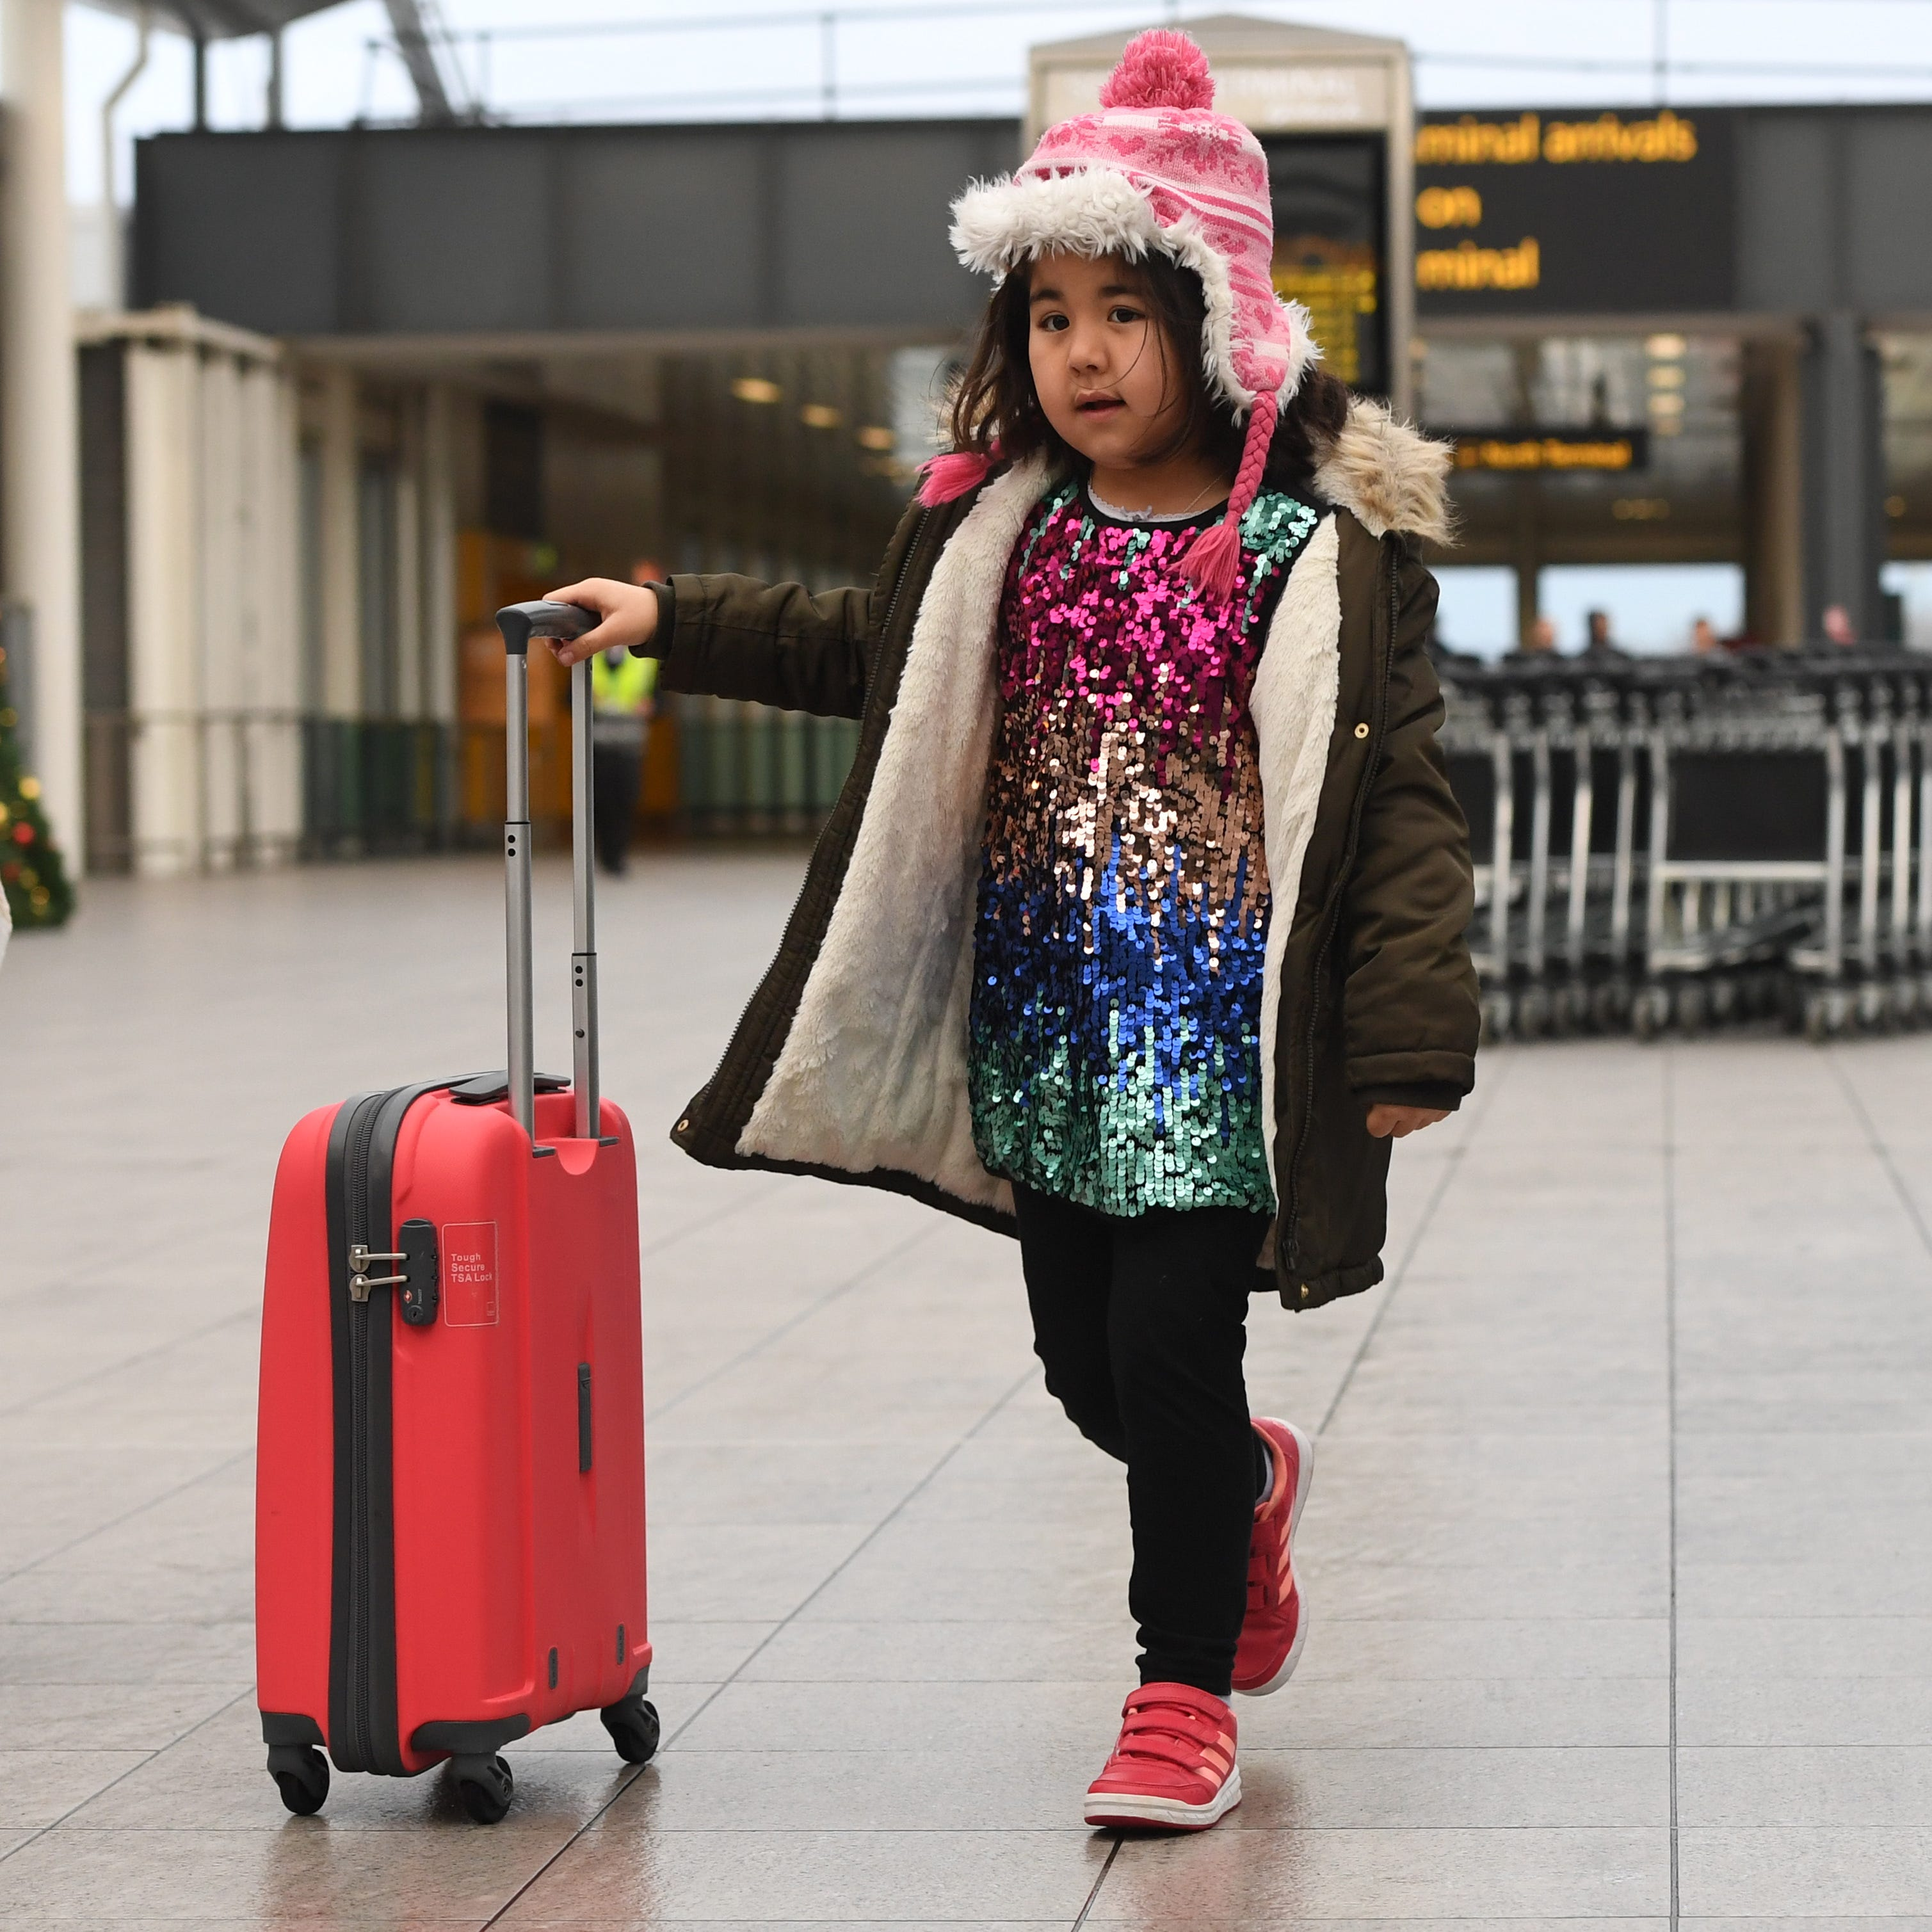 A passenger arrives with her luggage at London's Gatwick airport on Dec. 21, 2018.